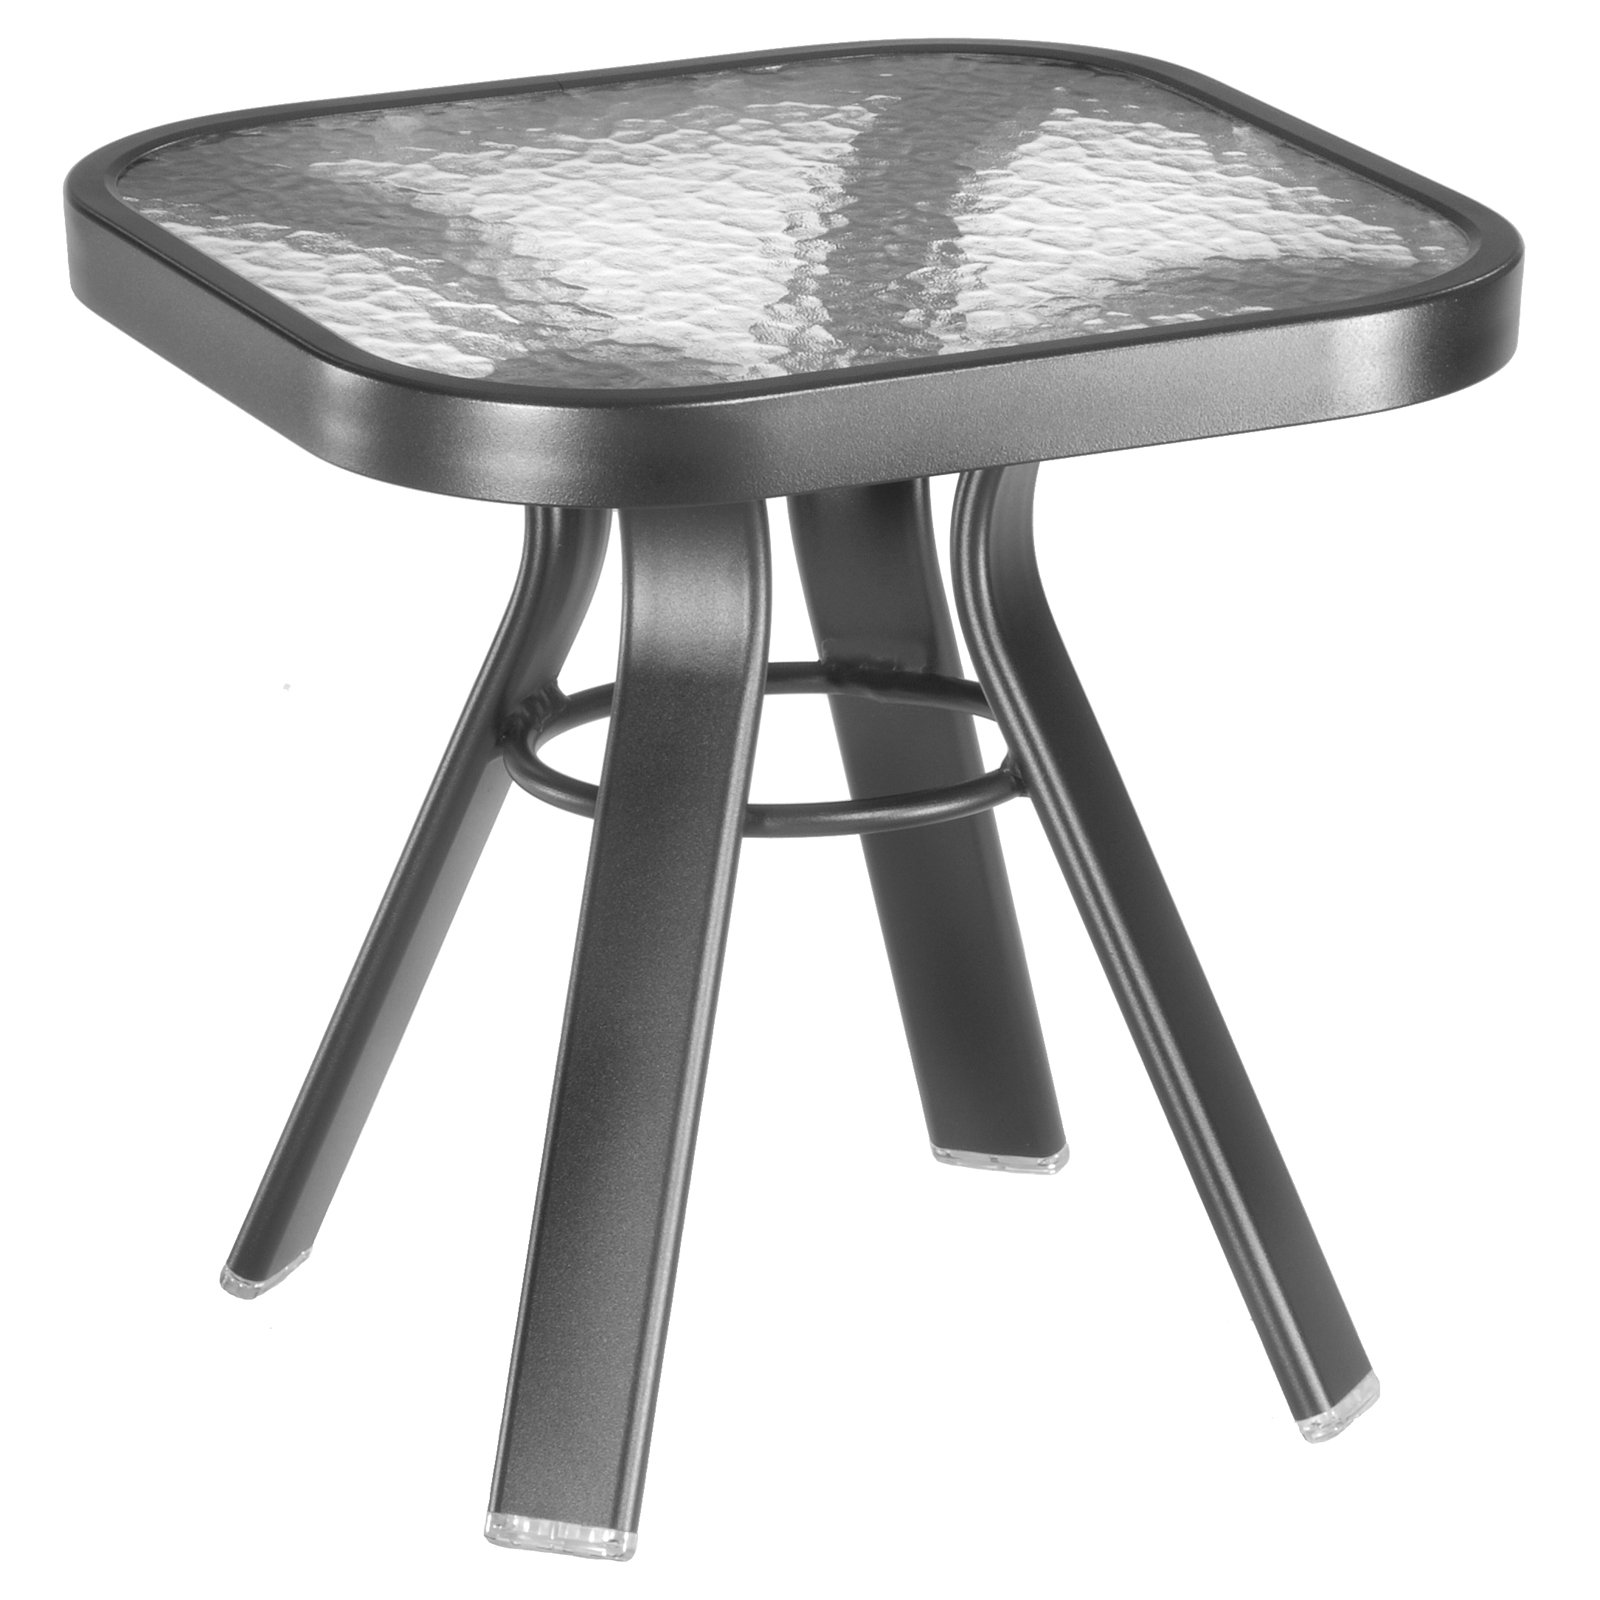 homecrest glass top square end table patio accent tables bronze outdoor mid century dining chairs metal legs target ott round dorm sets marble room set wood tiffany rattle